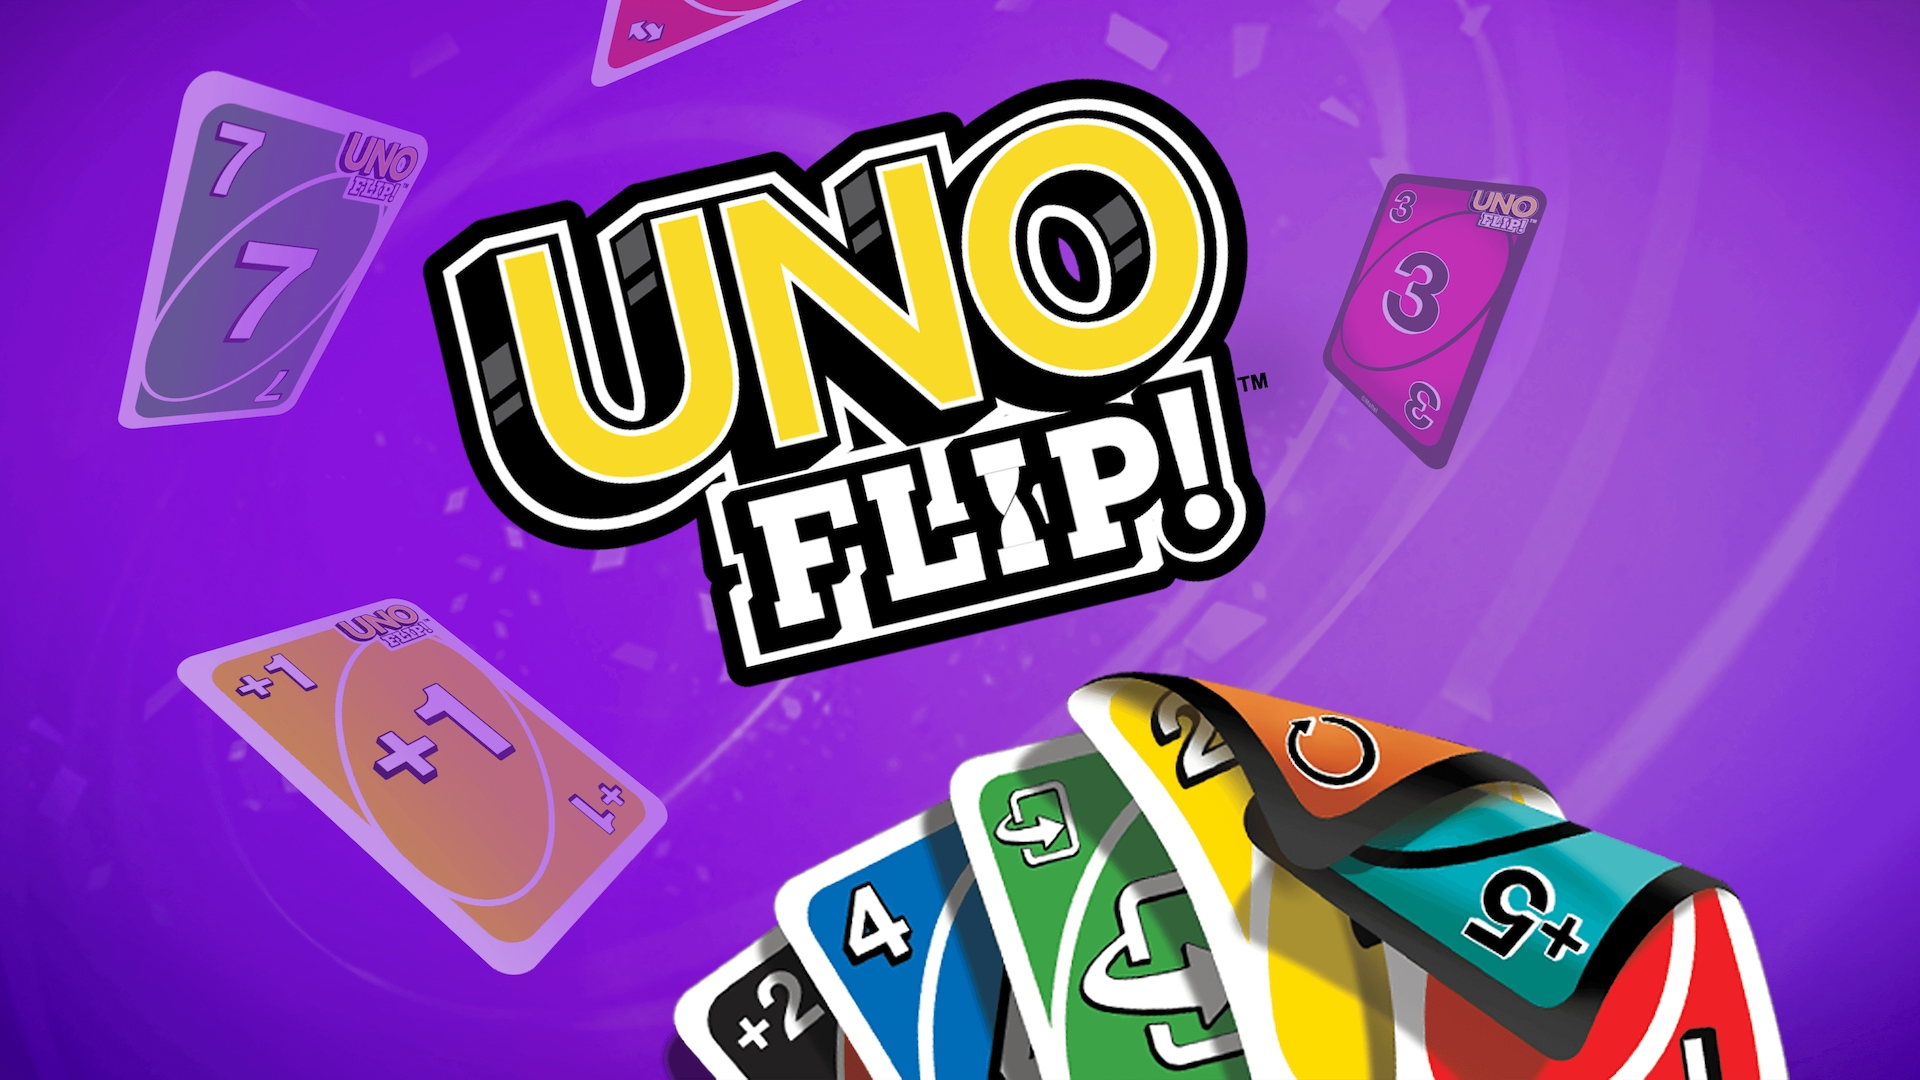 Uno Flip Download Play The Uno Flip Dlc For Pc Today Epic Games Store